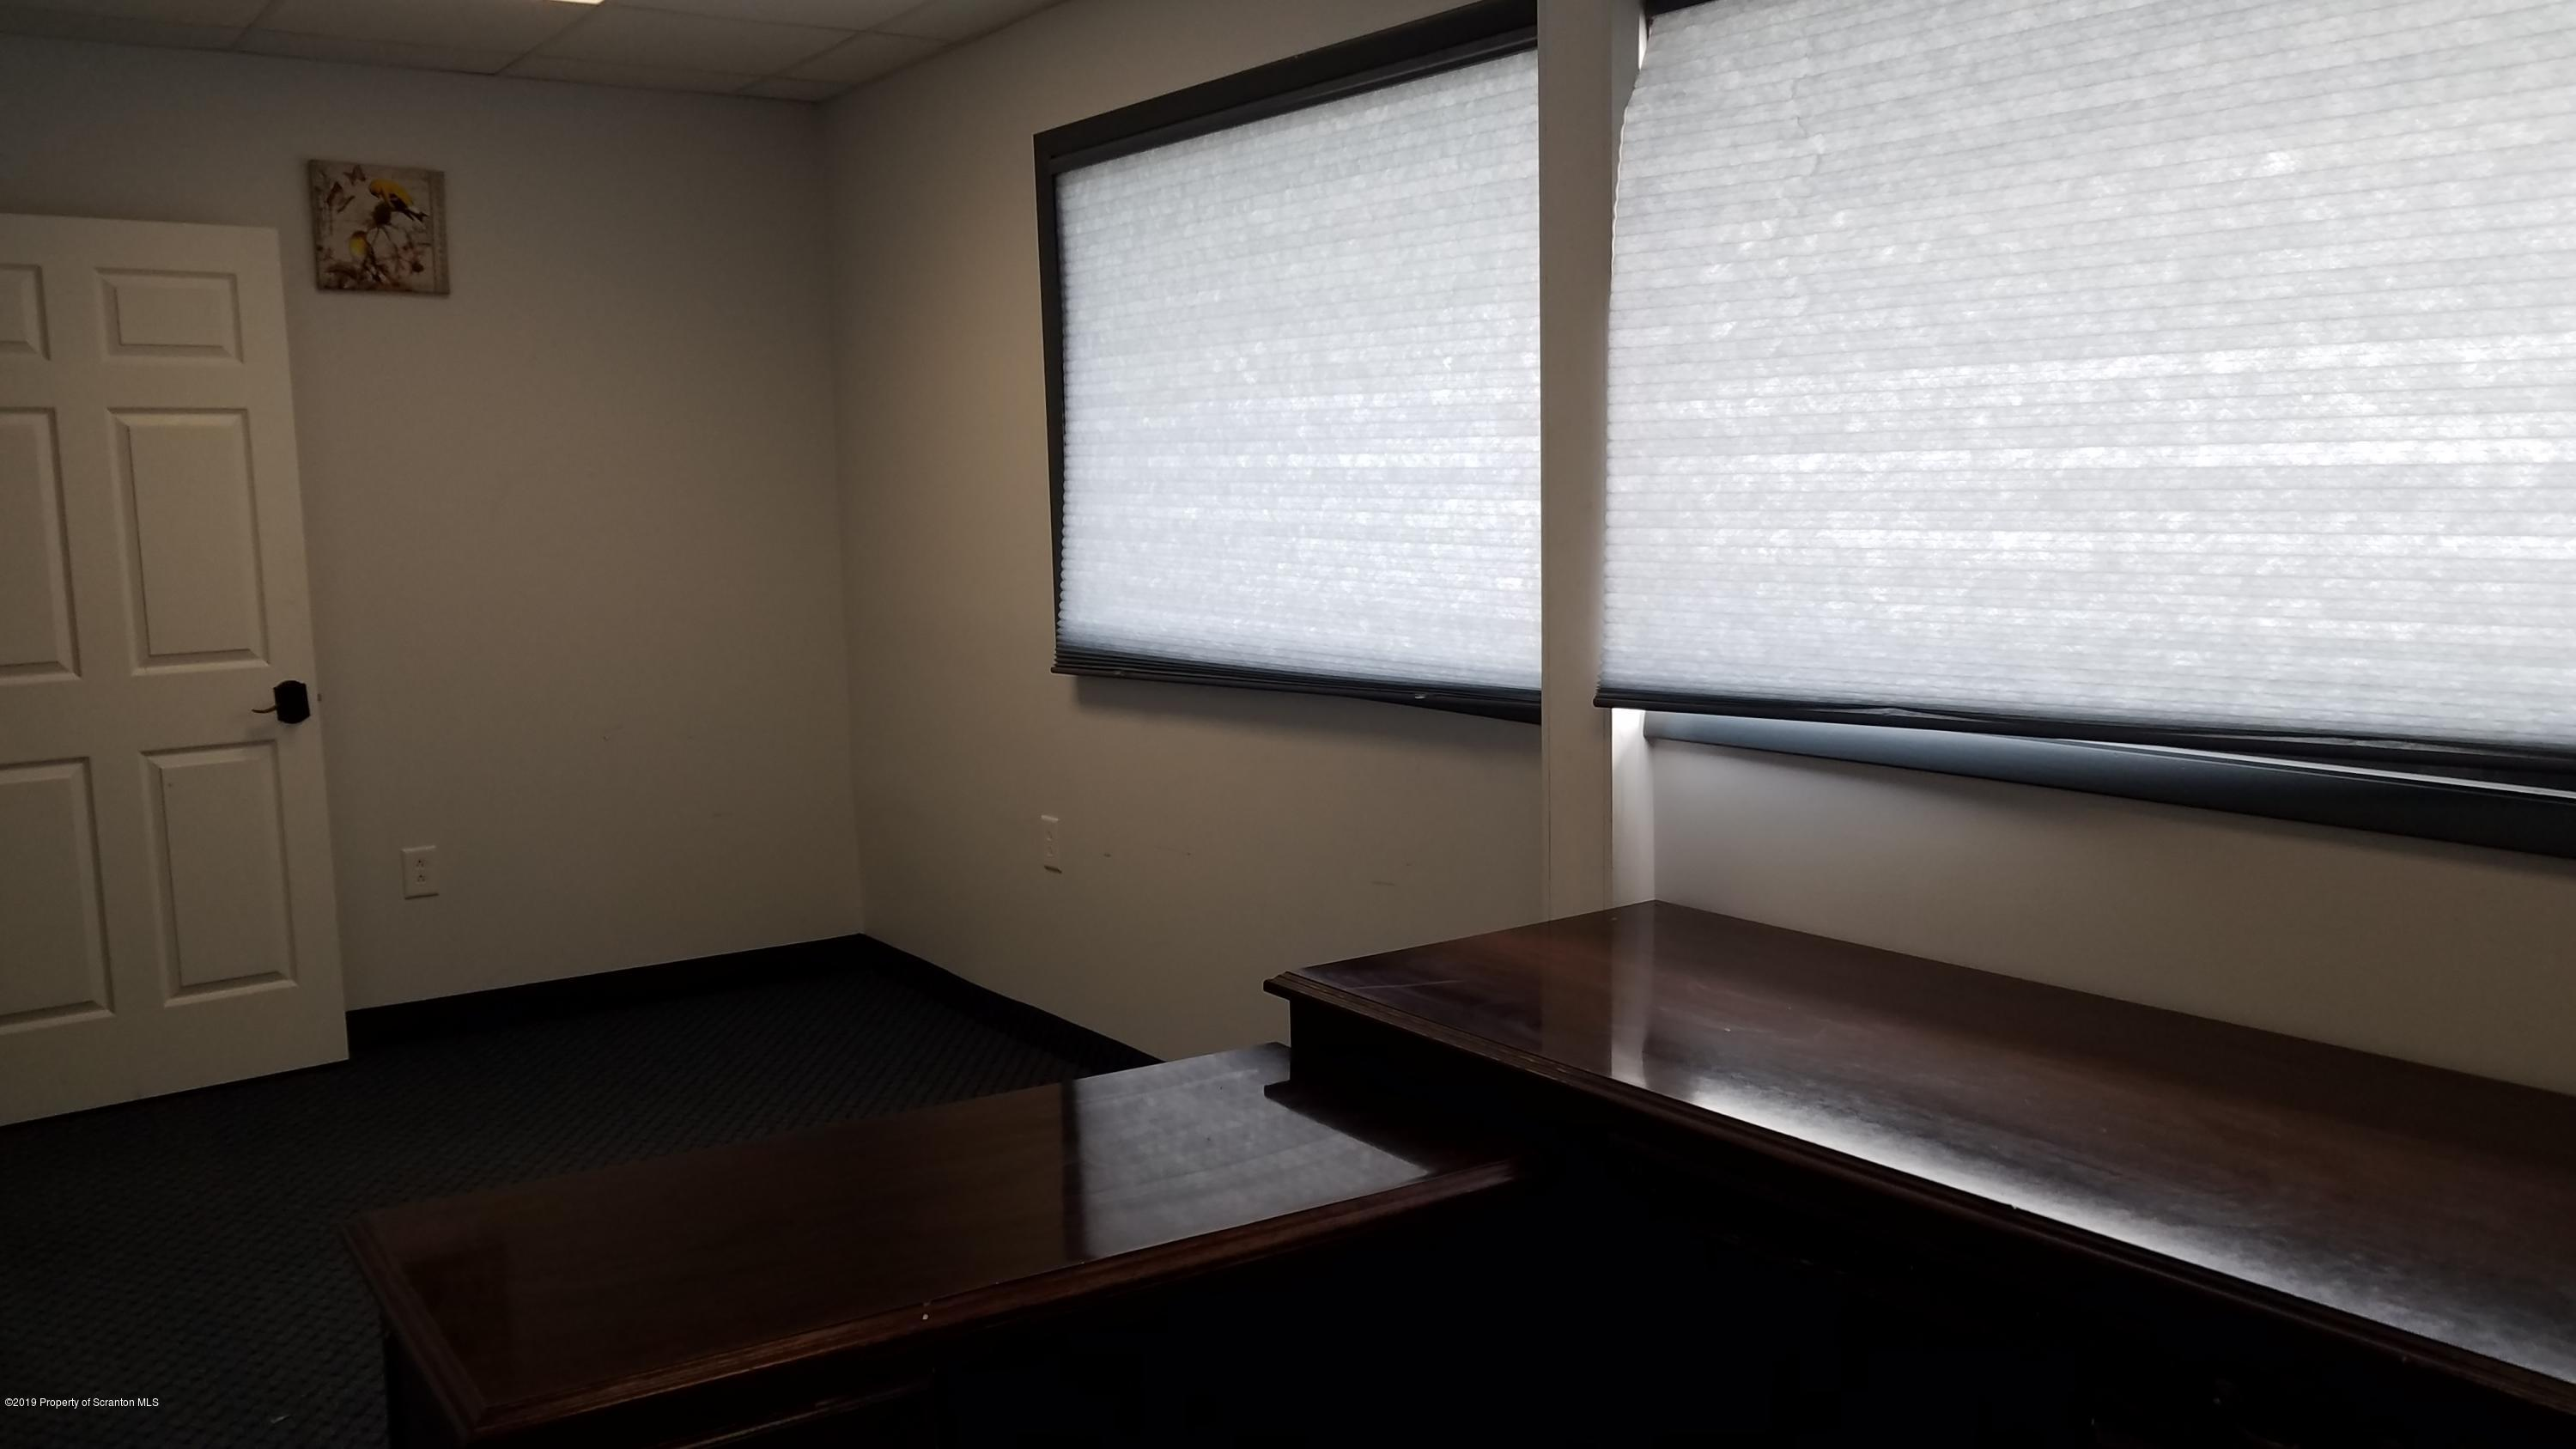 16687 PA-706, Montrose, Pennsylvania 18801, ,1 BathroomBathrooms,Commercial,For Lease,PA-706,19-2467